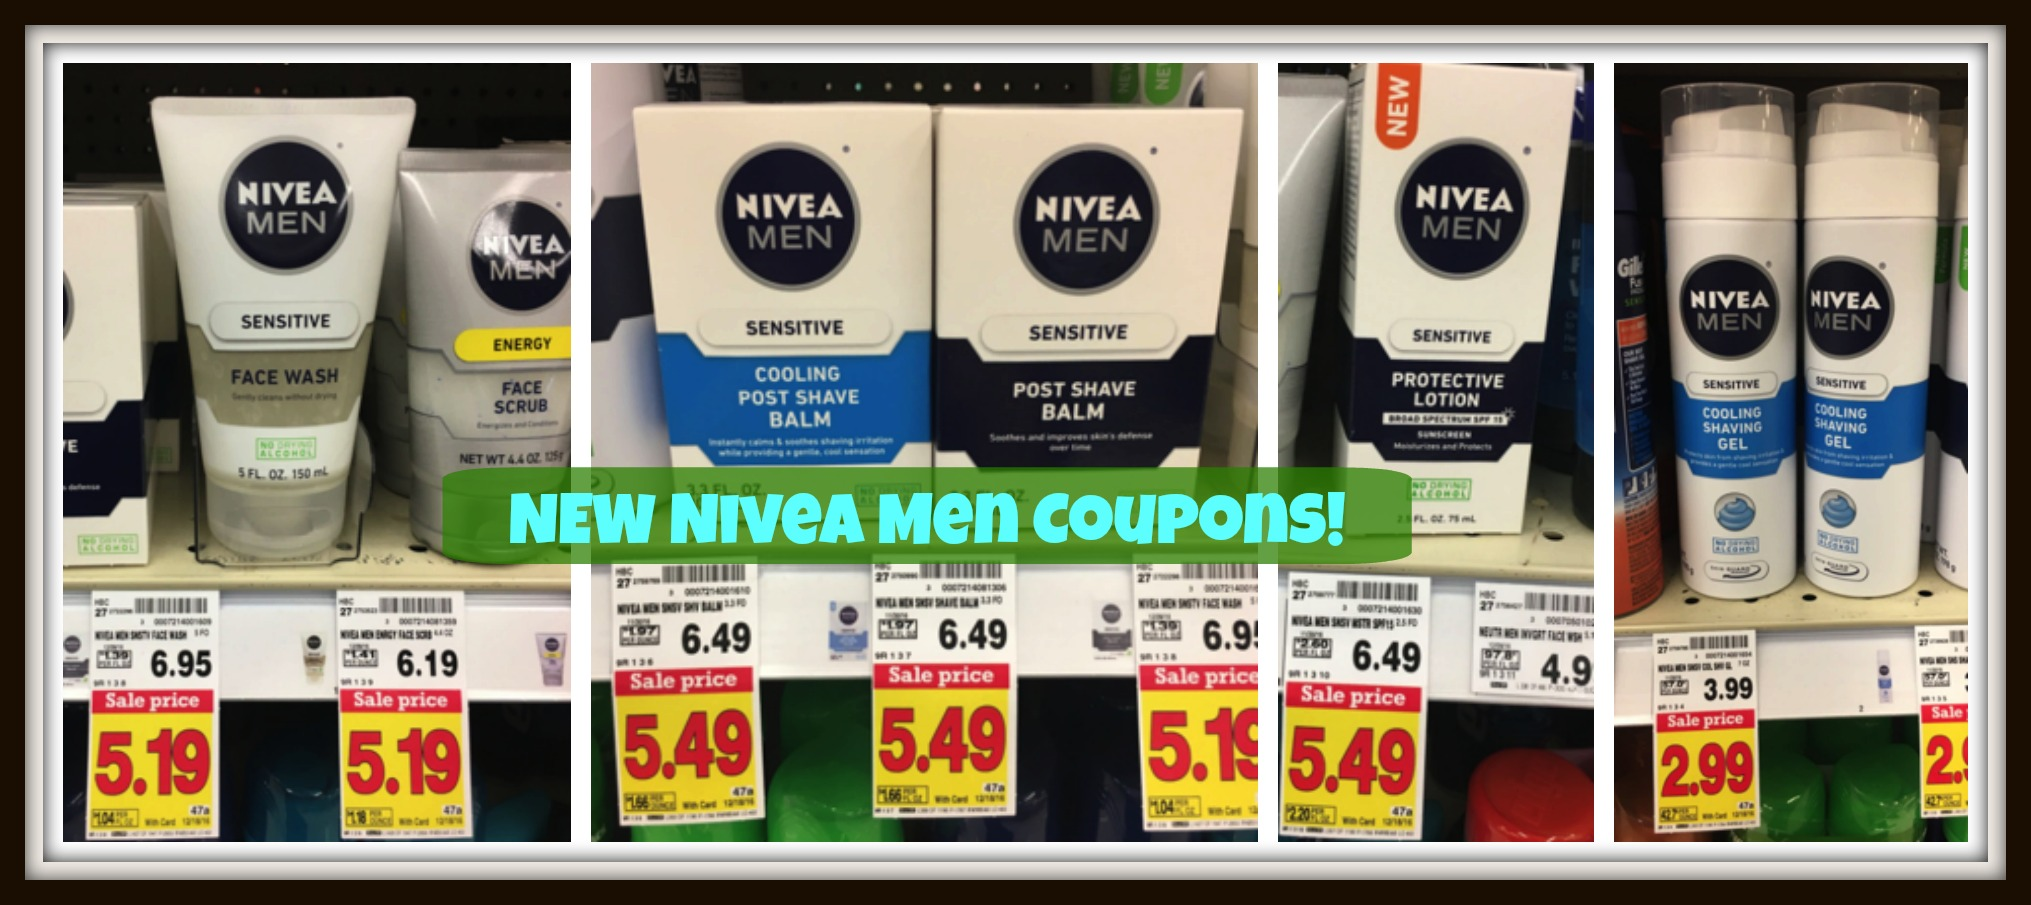 NEW Nivea Men Coupons + Kroger Deal Scenarios!!! - Kroger Krazy